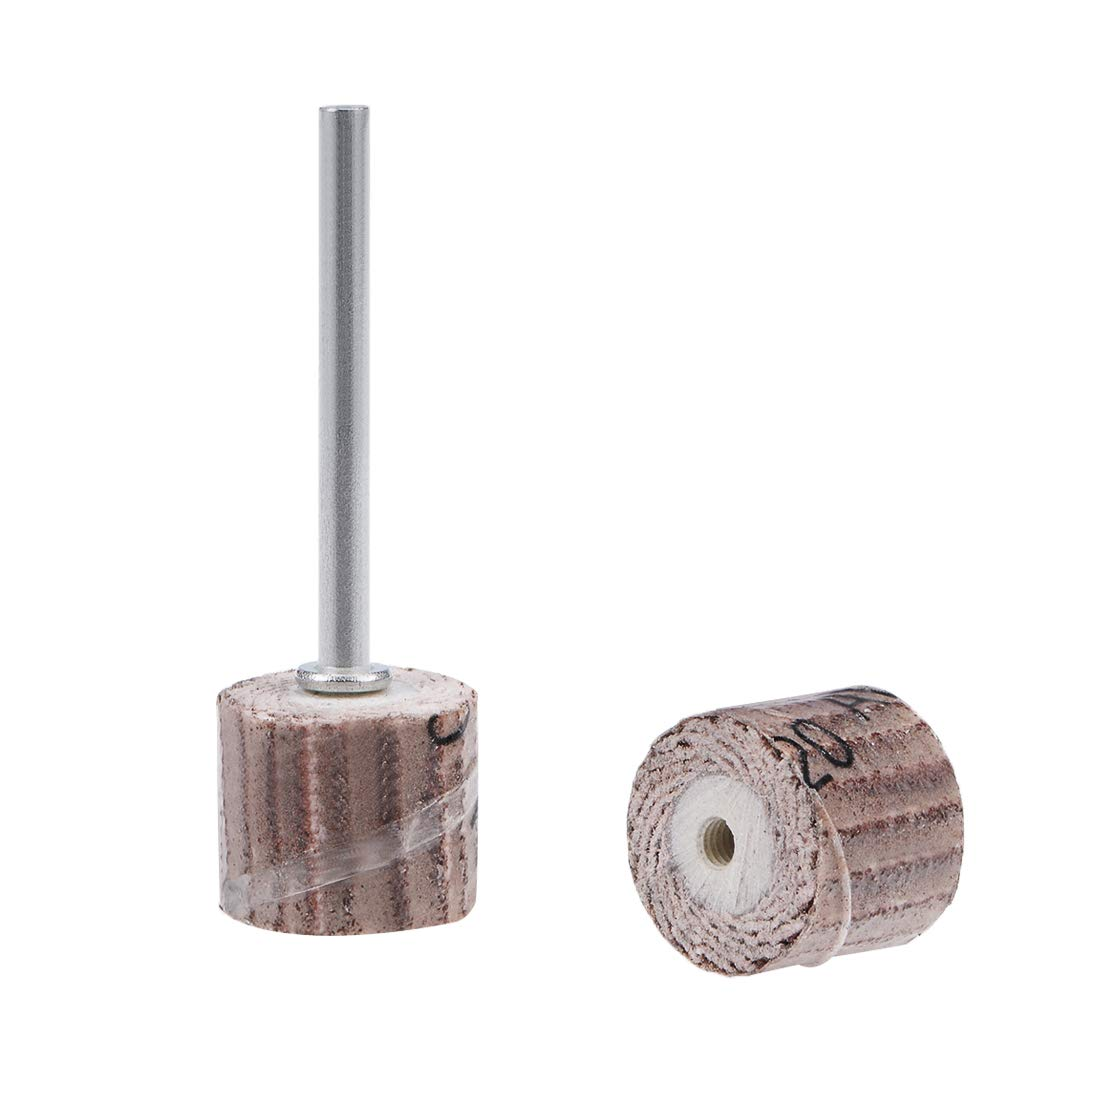 uxcell 2 Pcs 12x12mm Flap Wheel 120 Grits Abrasive Grinding Head with 1/8'' Shank for Rotary Tool